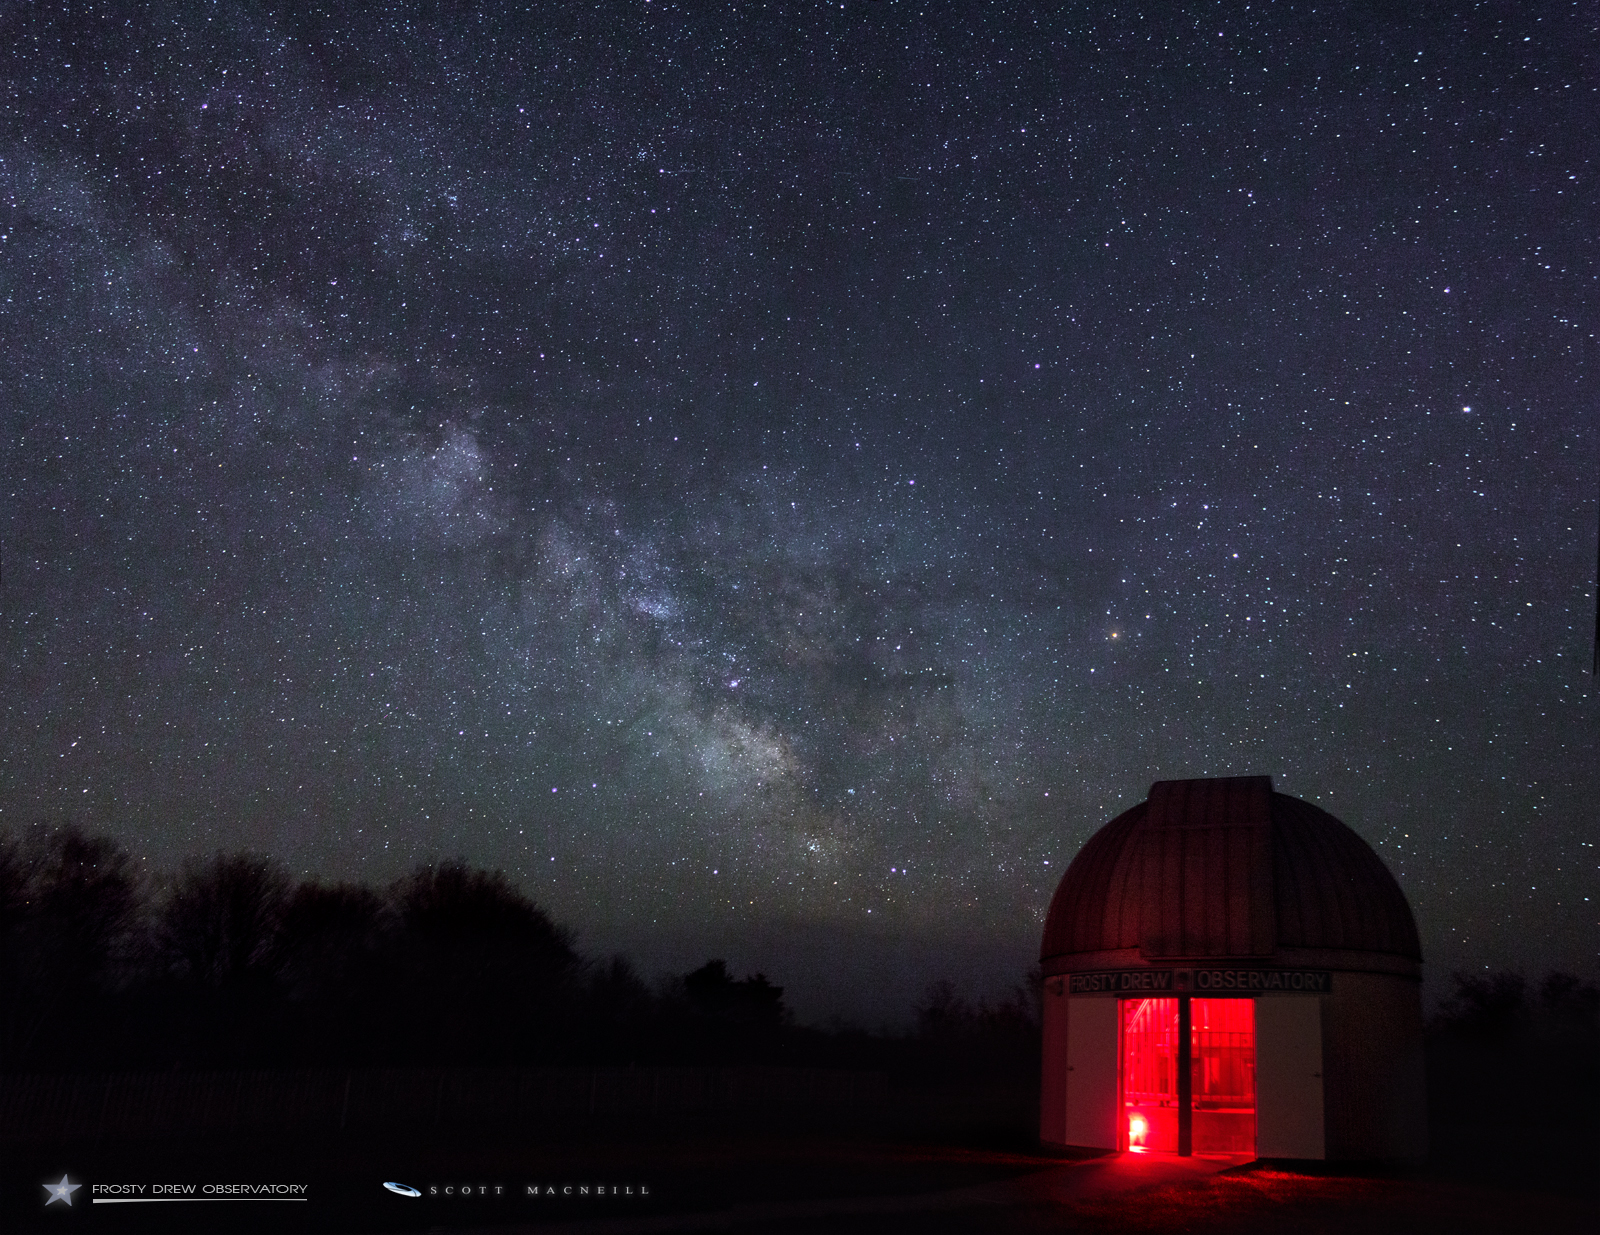 Milky Way Galaxy Plus Saturn Equals Magical Night for Stargazer (Photos)